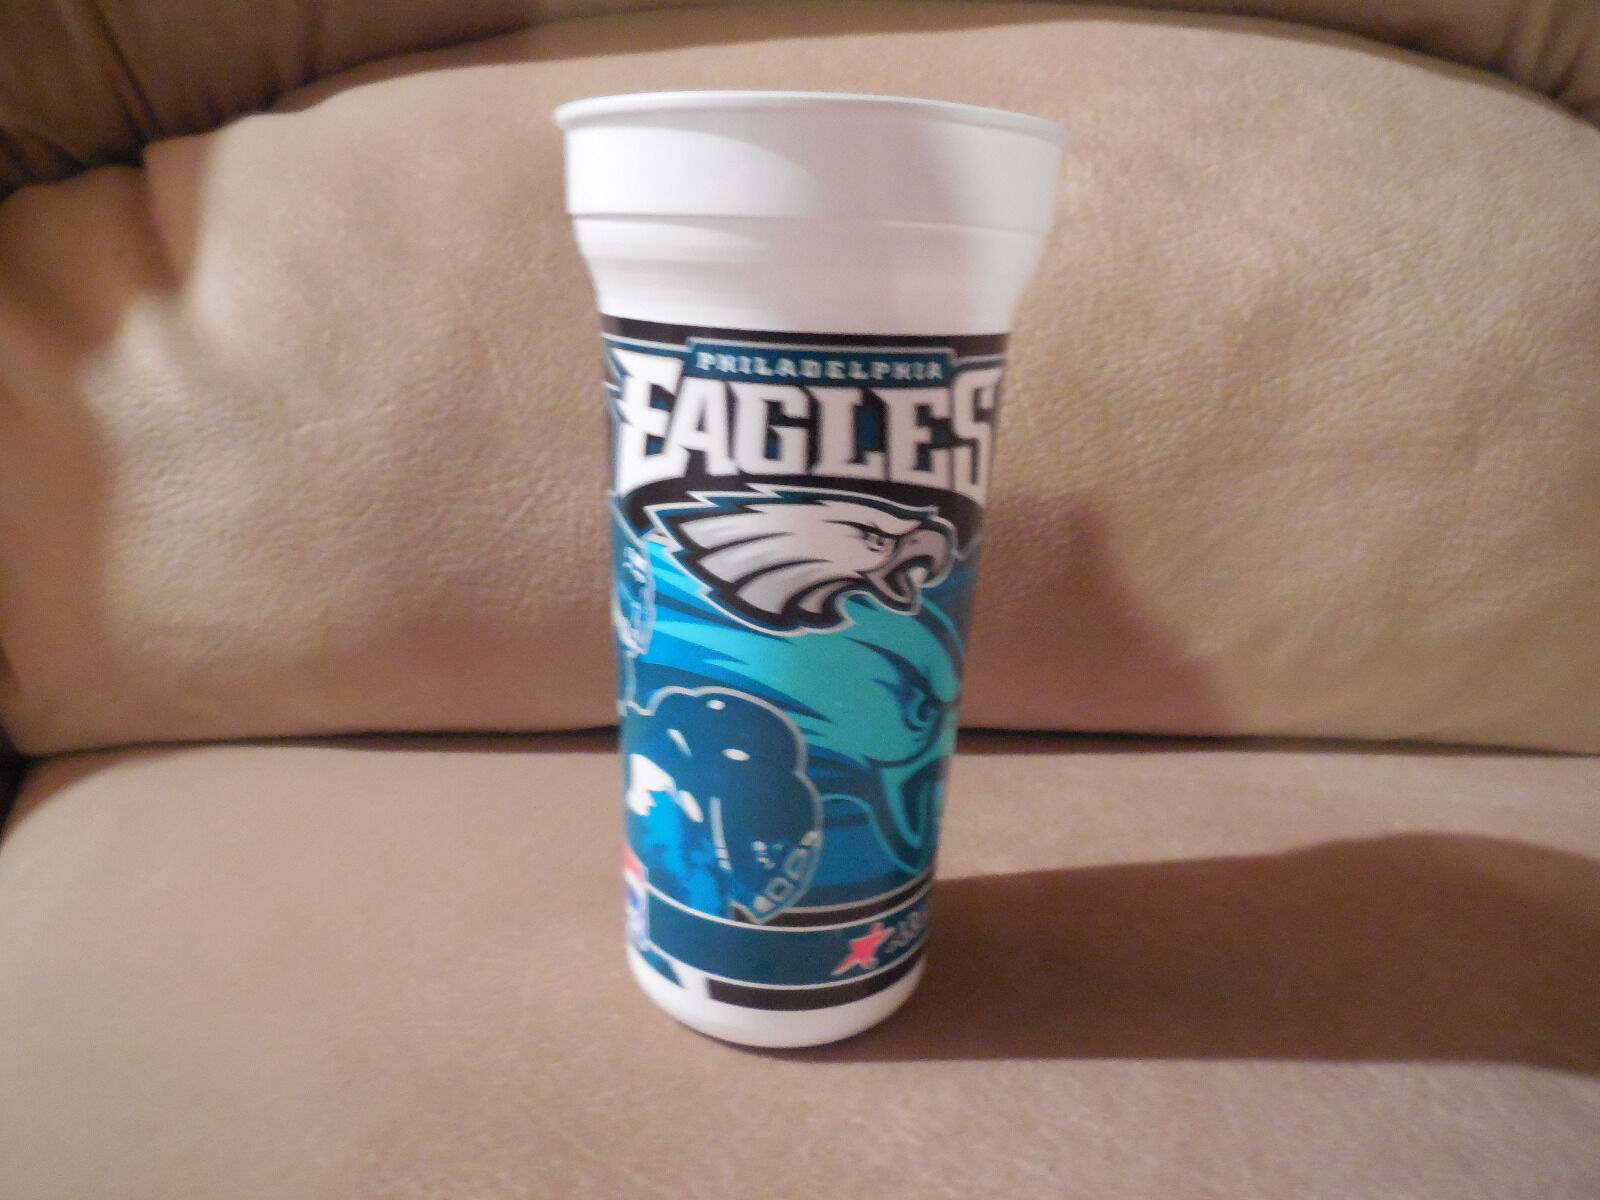 Philadelphia Eagles 2005 Lincoln Financial Field NFL Stadium Collectible Cup | eBay